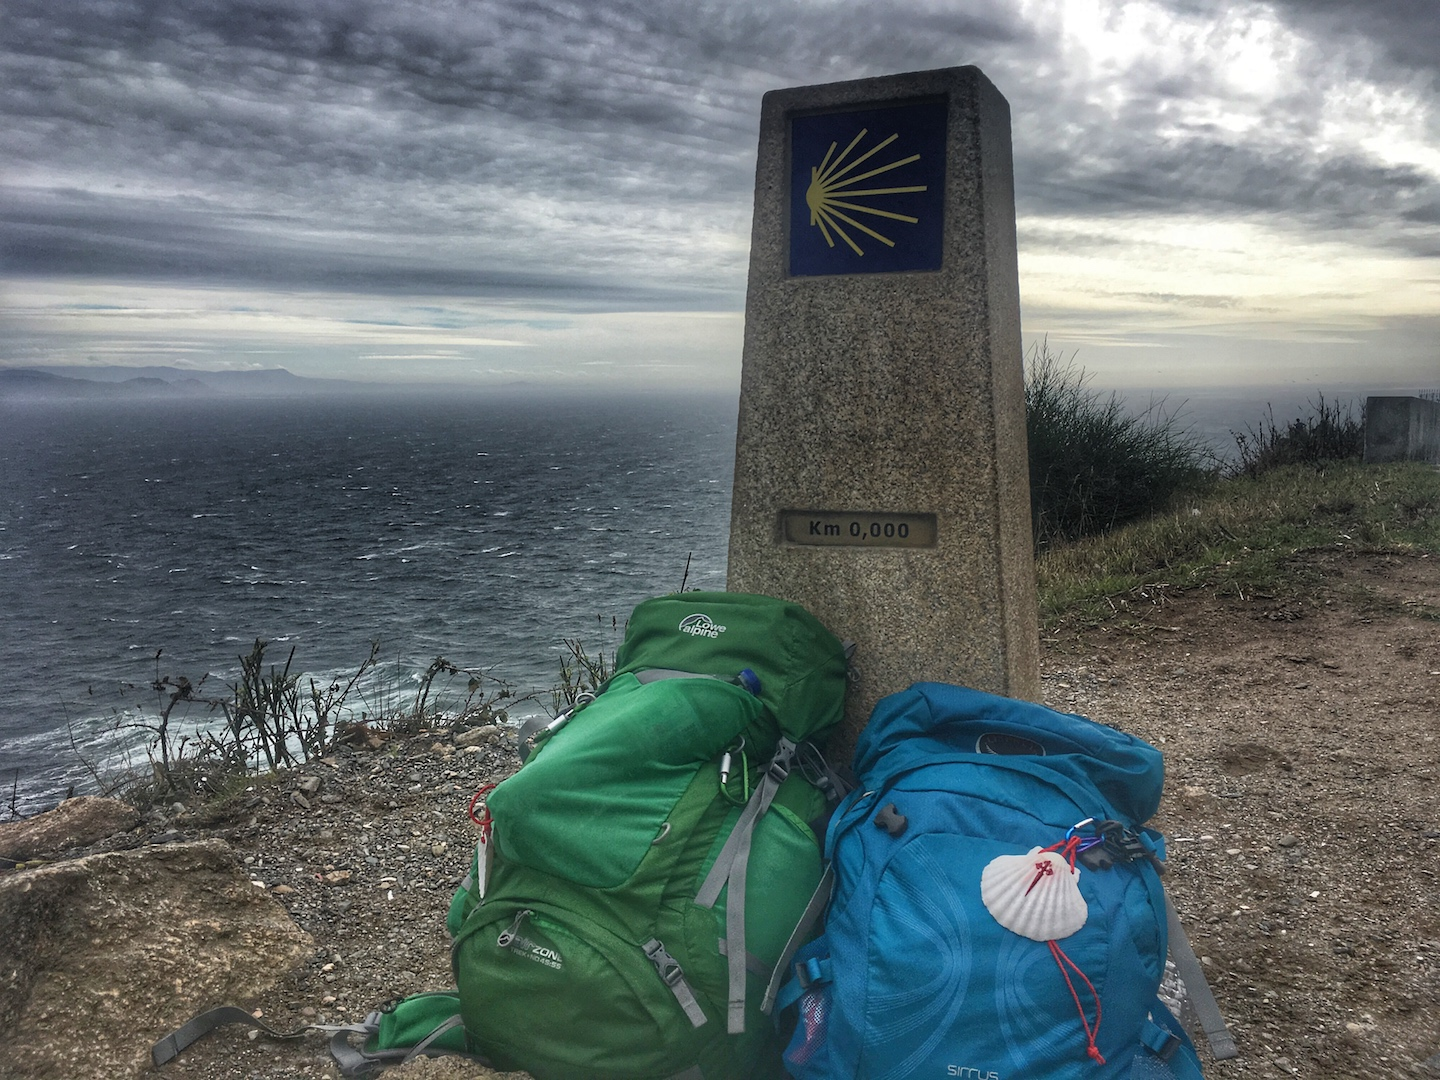 7 things I've learnt from walking the Camino